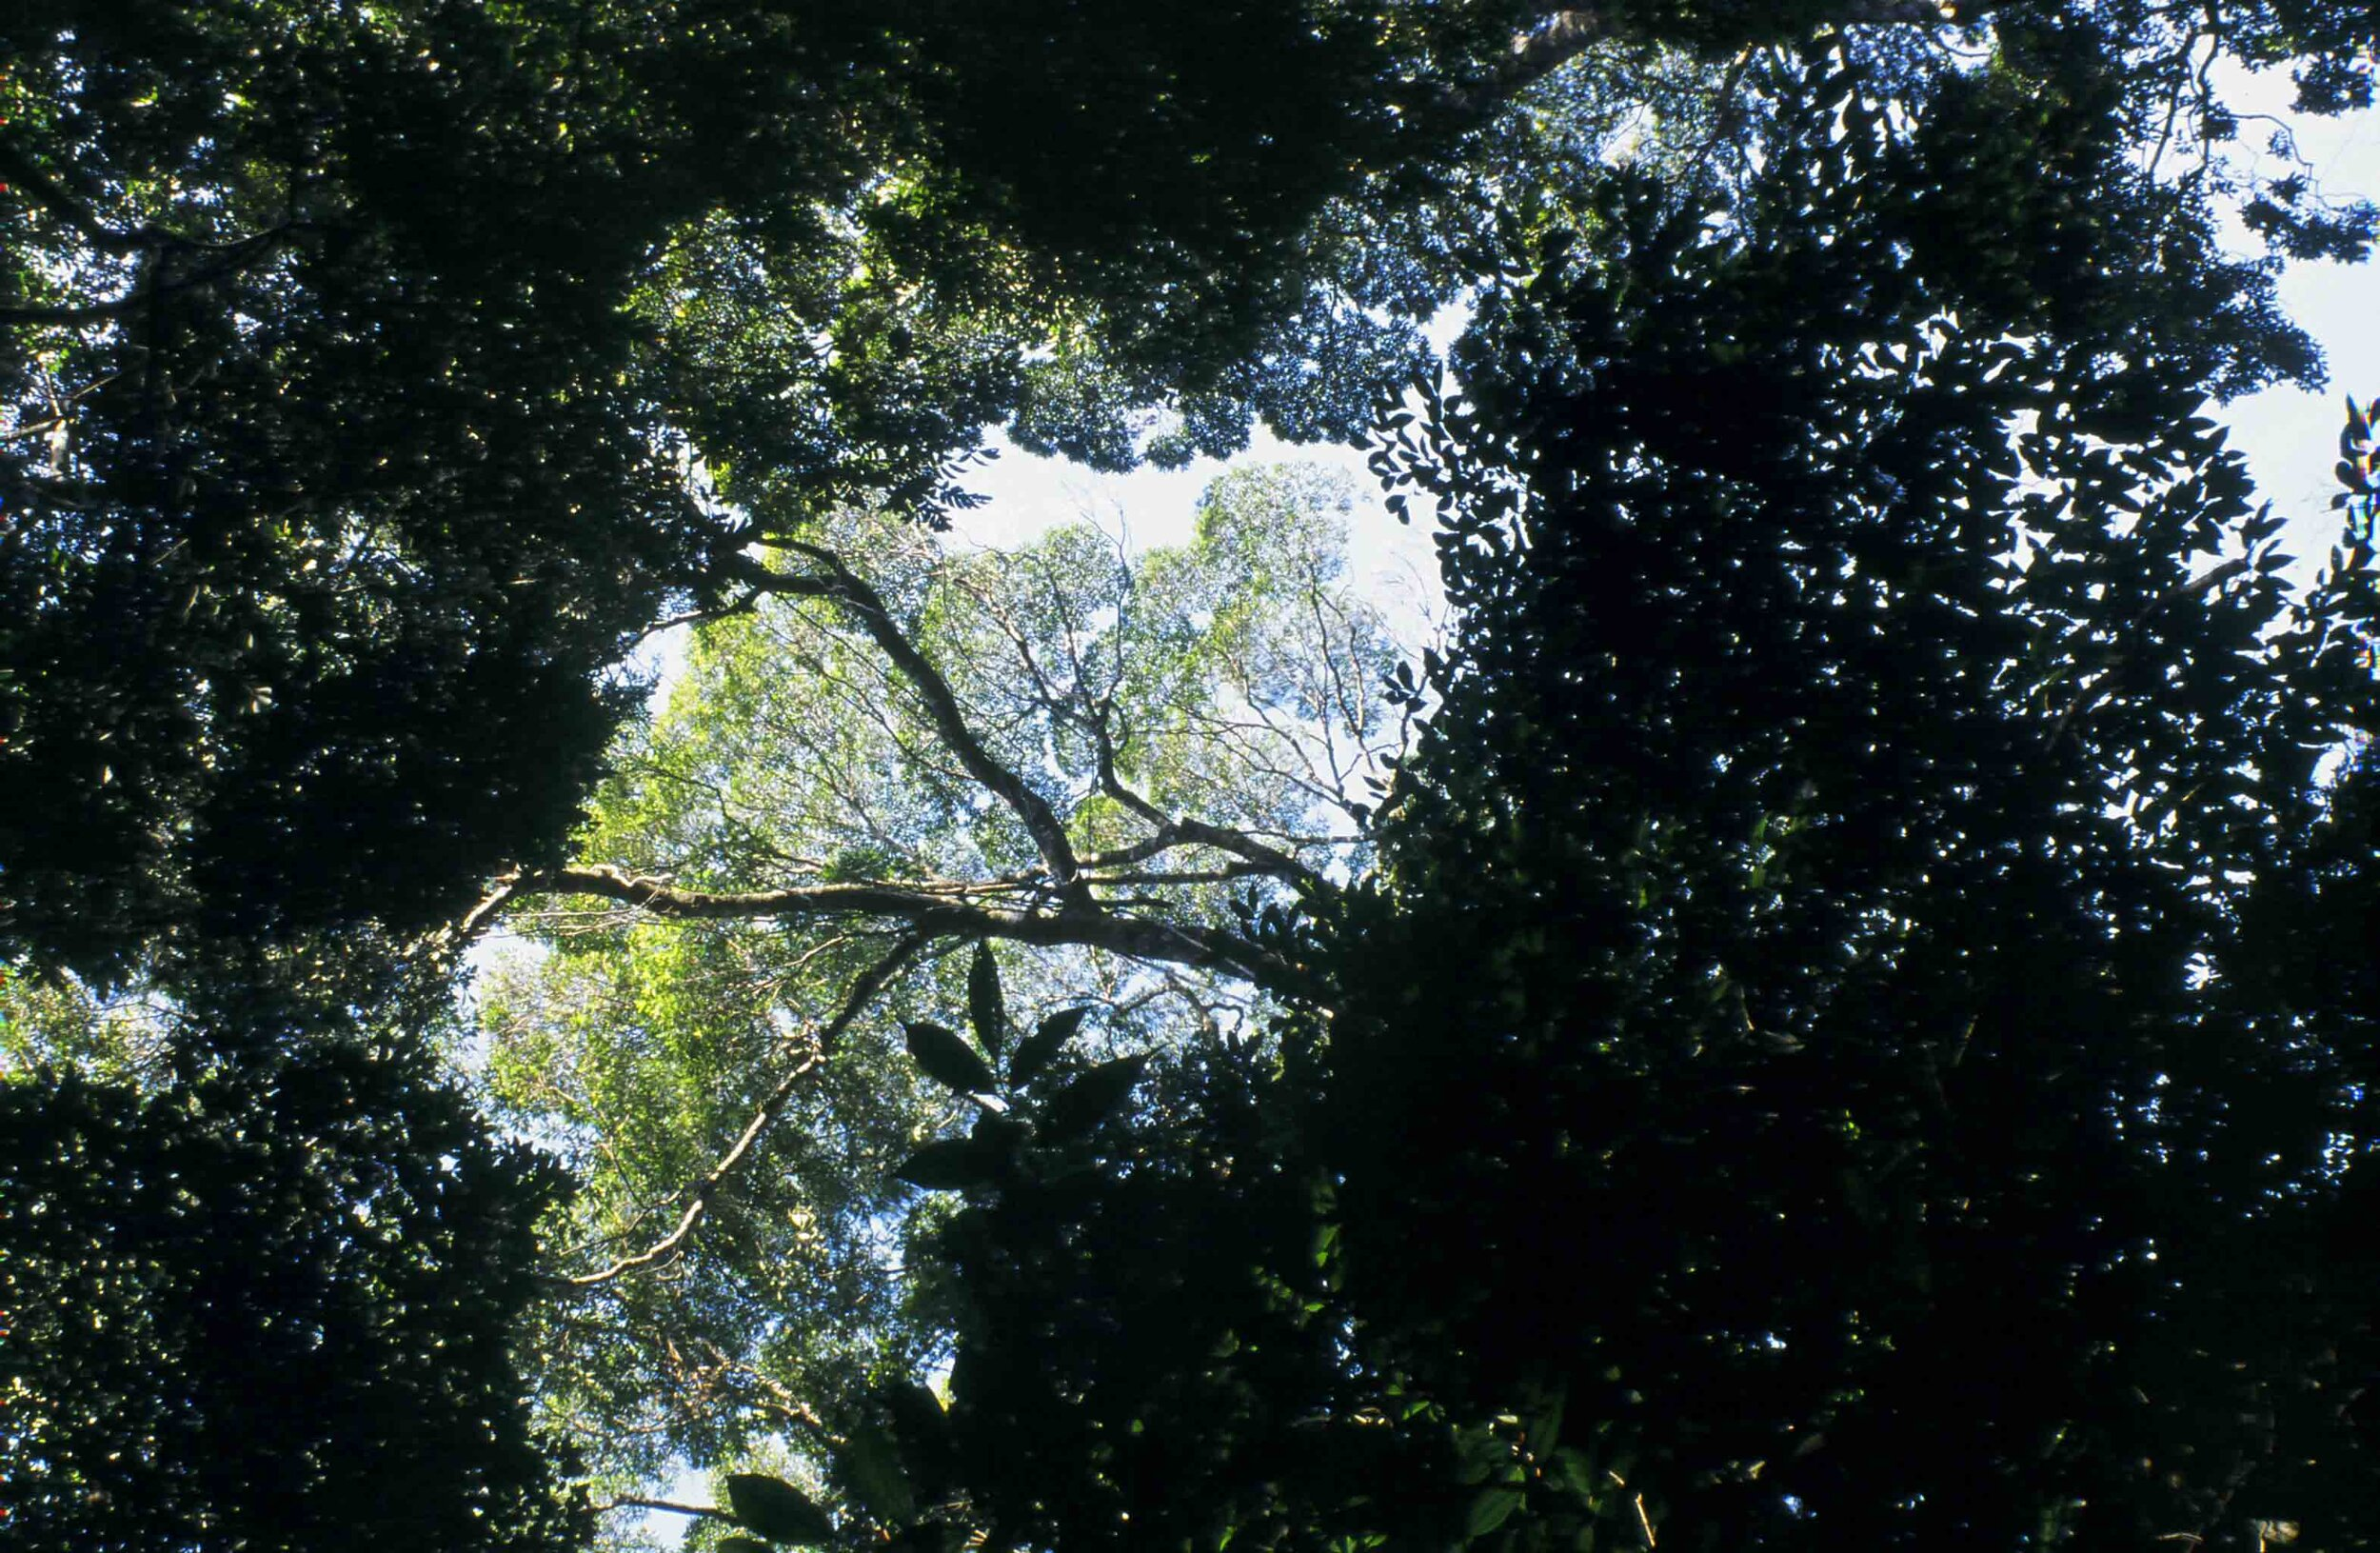 """Rainforest of Tijuca National Park, Rio de Janeiro. Protected and experienced as a """"wilderness"""" area despite having been re-planted 150 years ago and today facing numerous pressures from the surrounding city."""